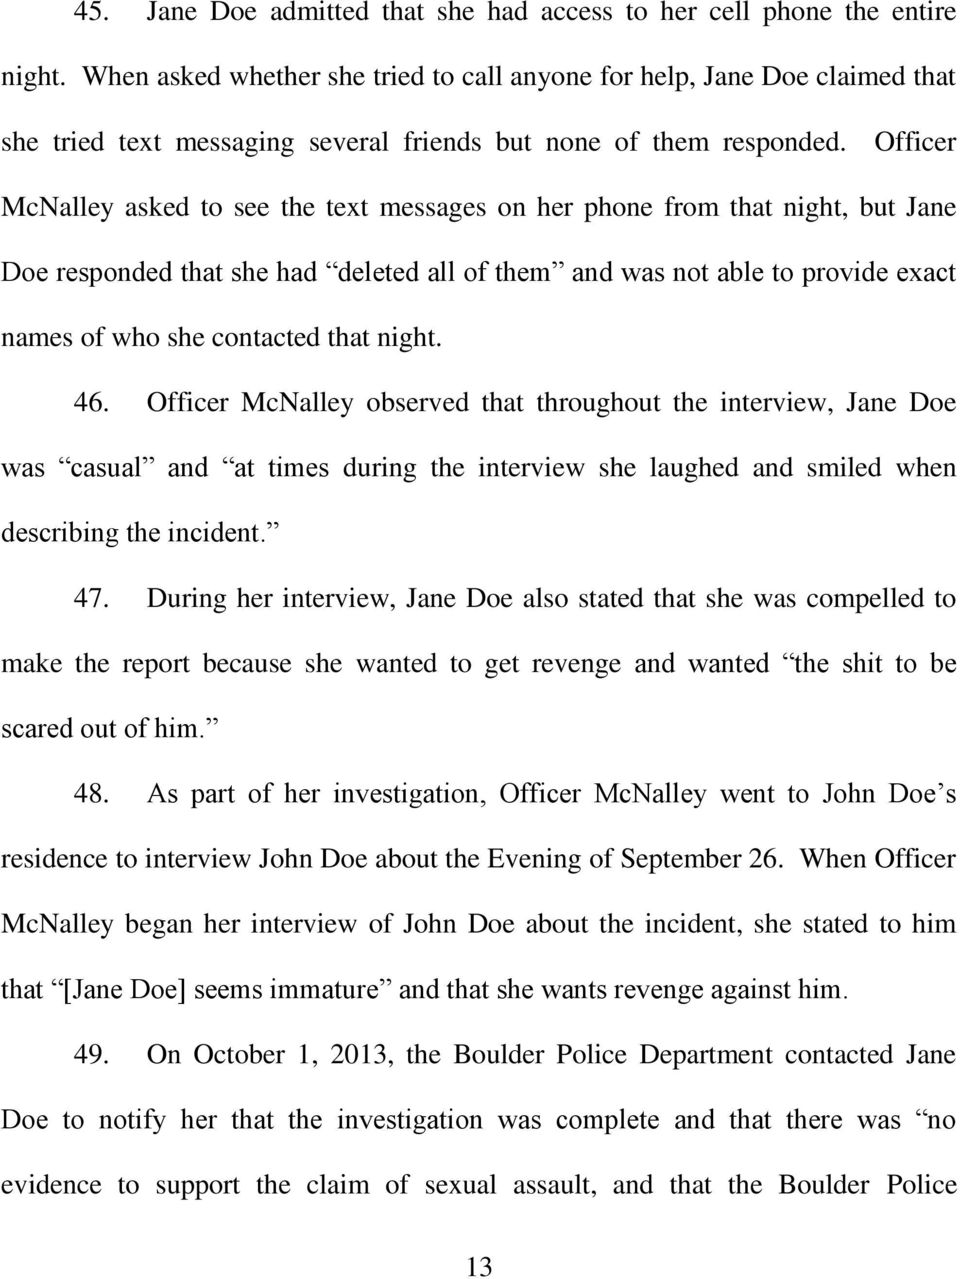 Officer McNalley asked to see the text messages on her phone from that night, but Jane Doe responded that she had deleted all of them and was not able to provide exact names of who she contacted that